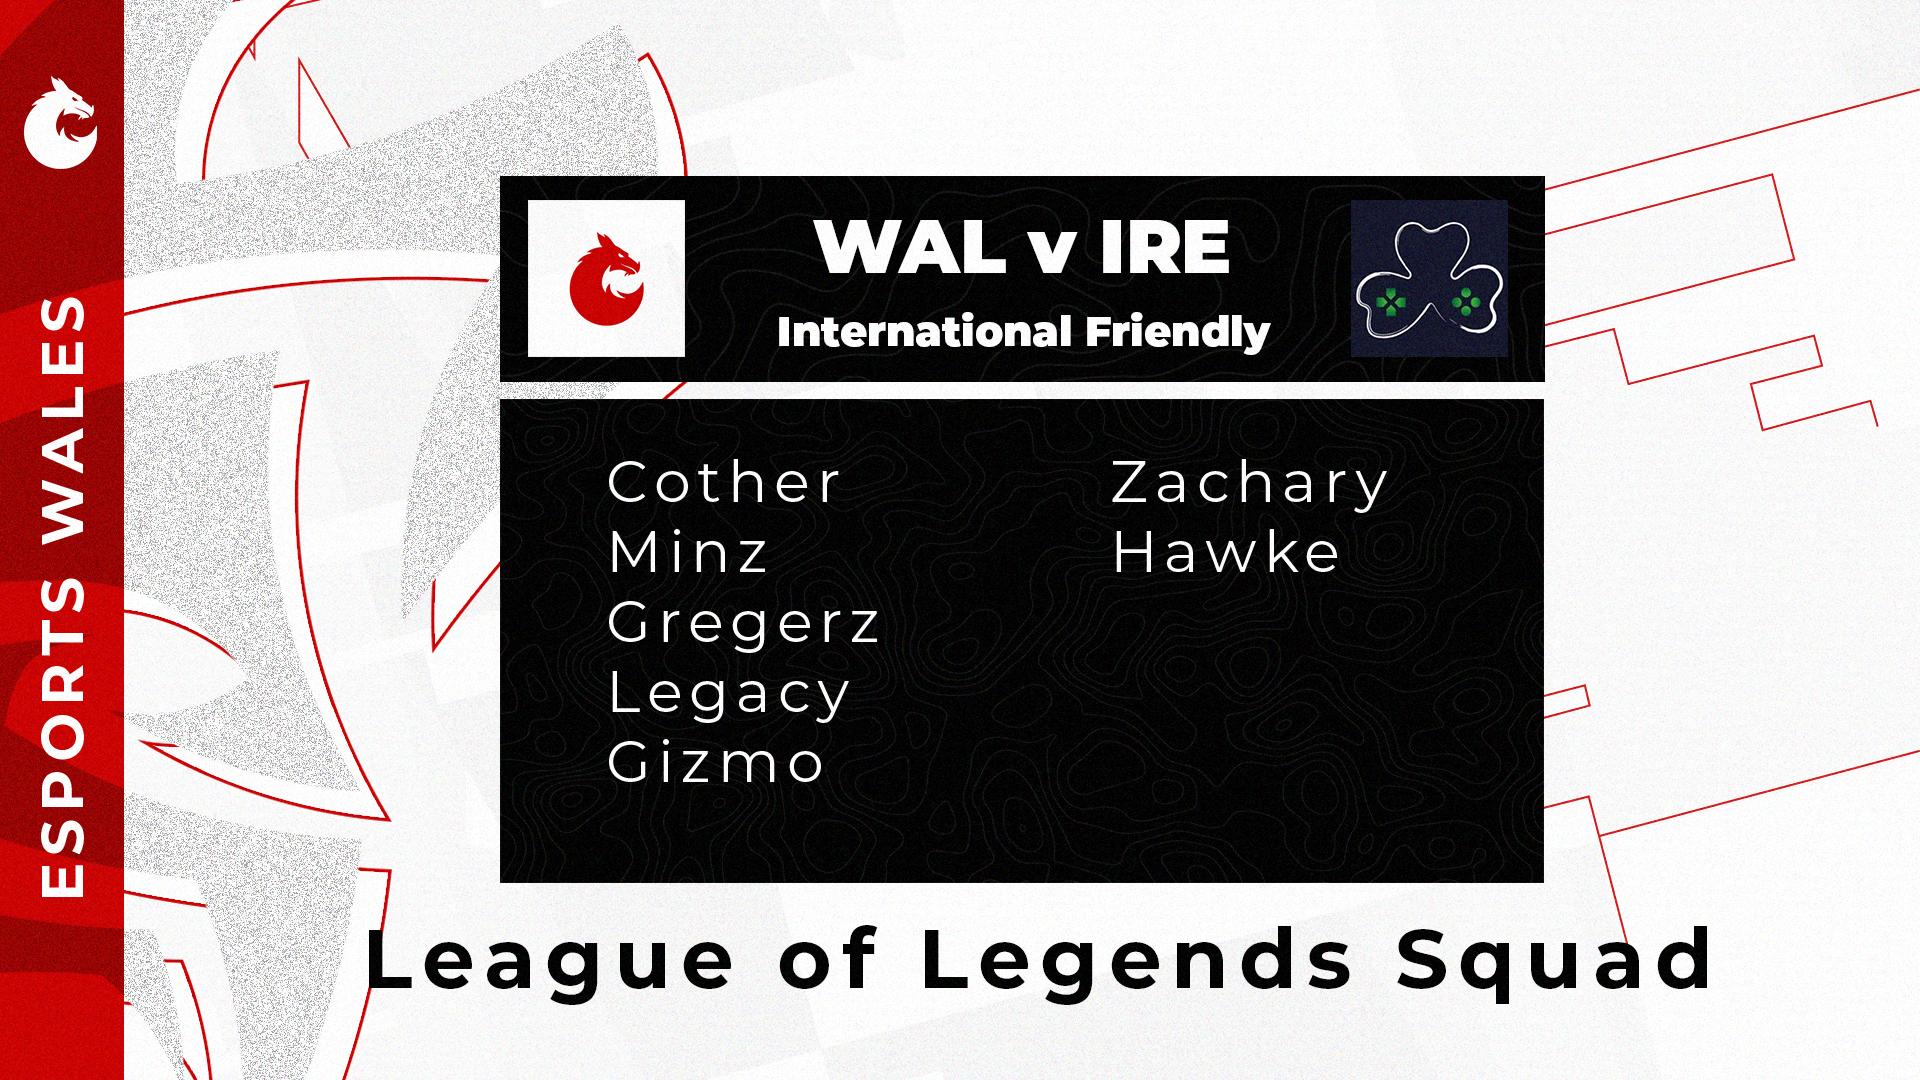 Wales vs Ireland League of Legends